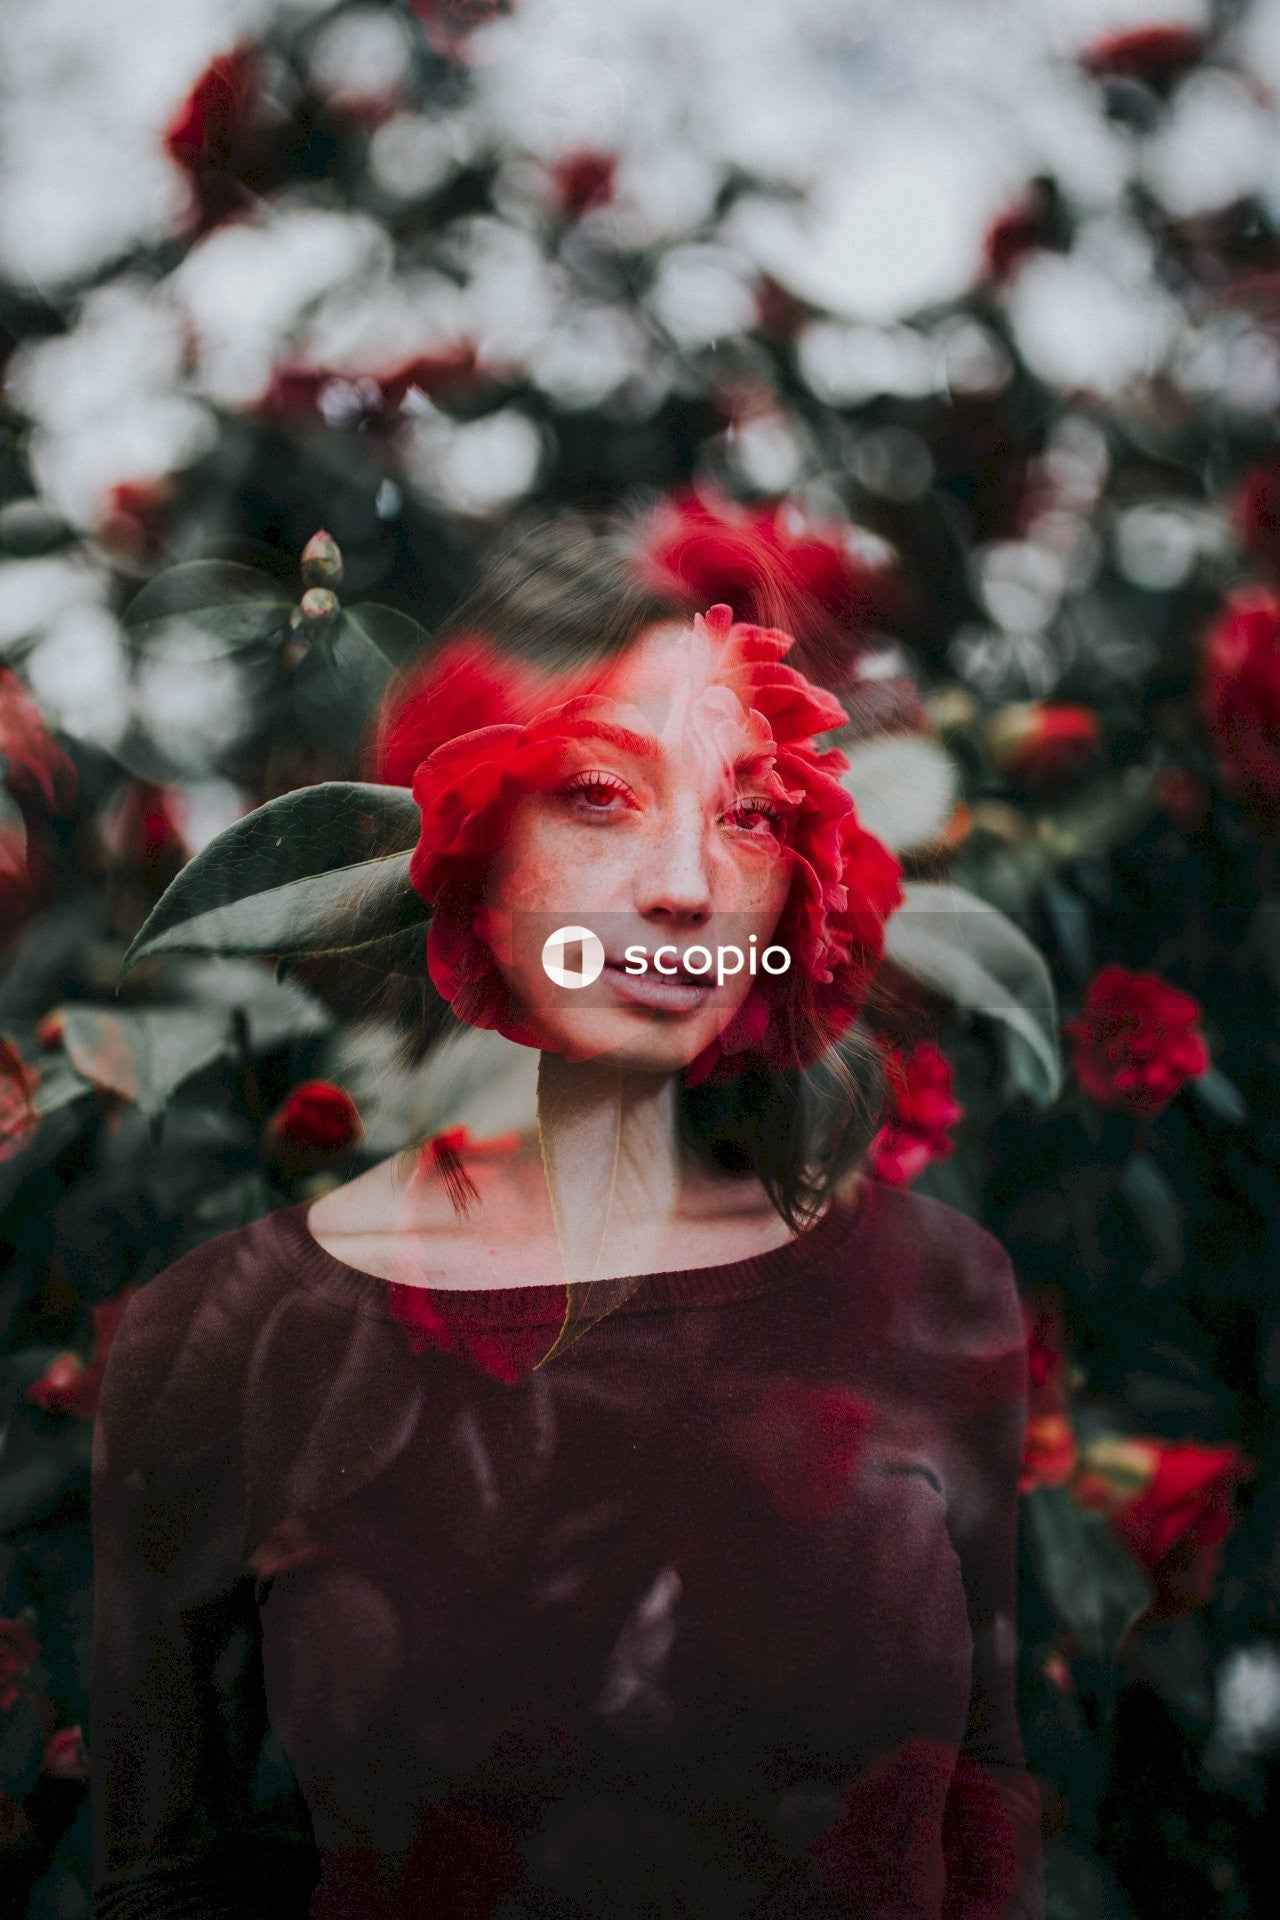 Woman in red long sleeve shirt standing near red flowers